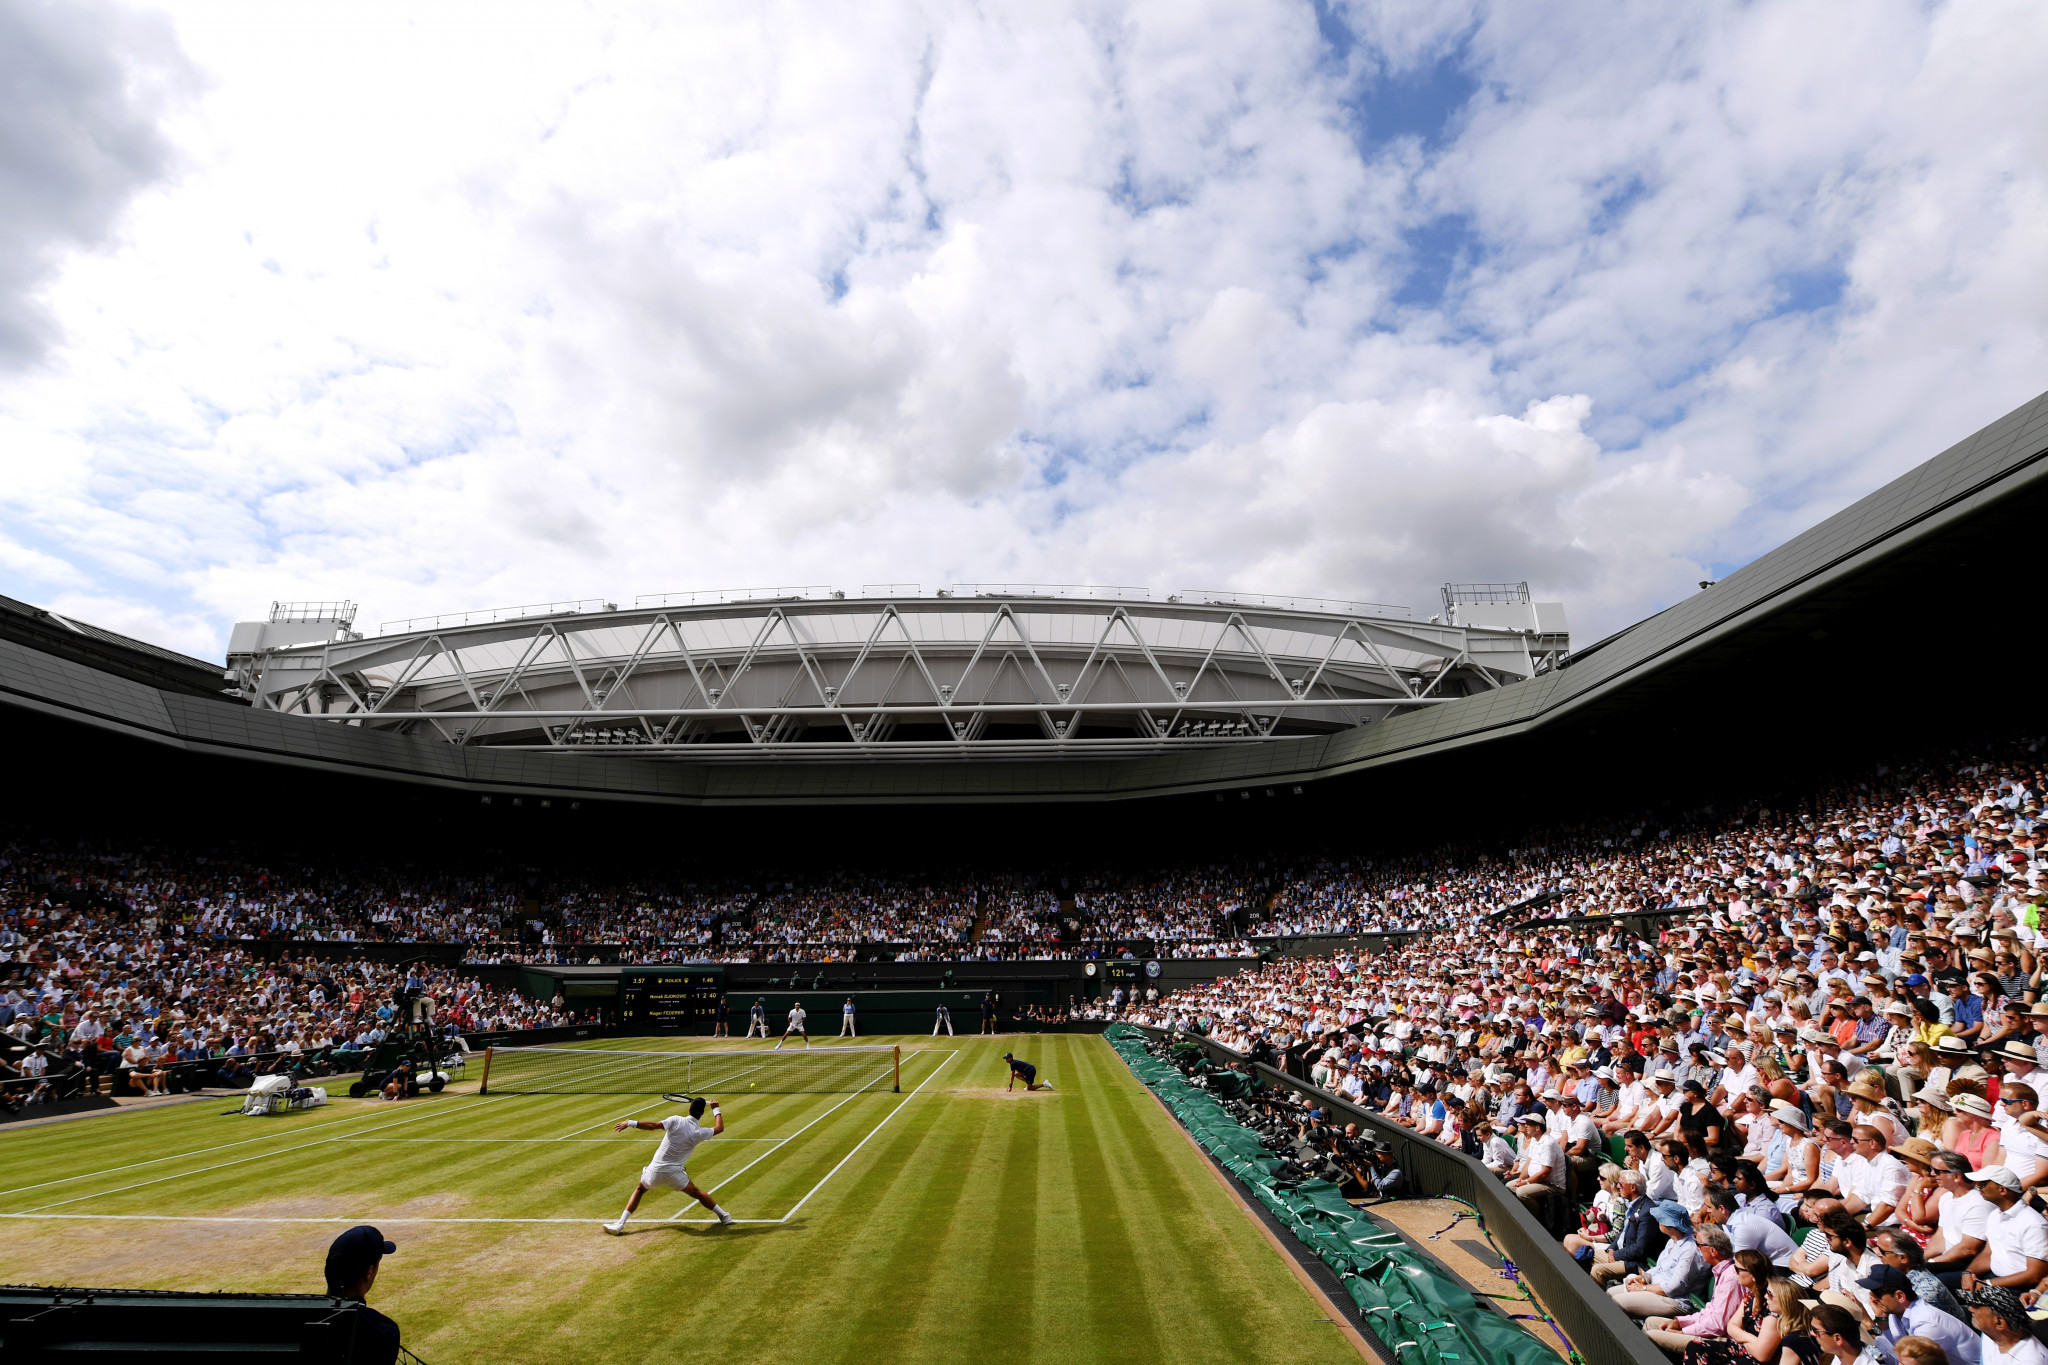 AELTC planning for reduced-capacity crowd at Wimbledon due to COVID-19